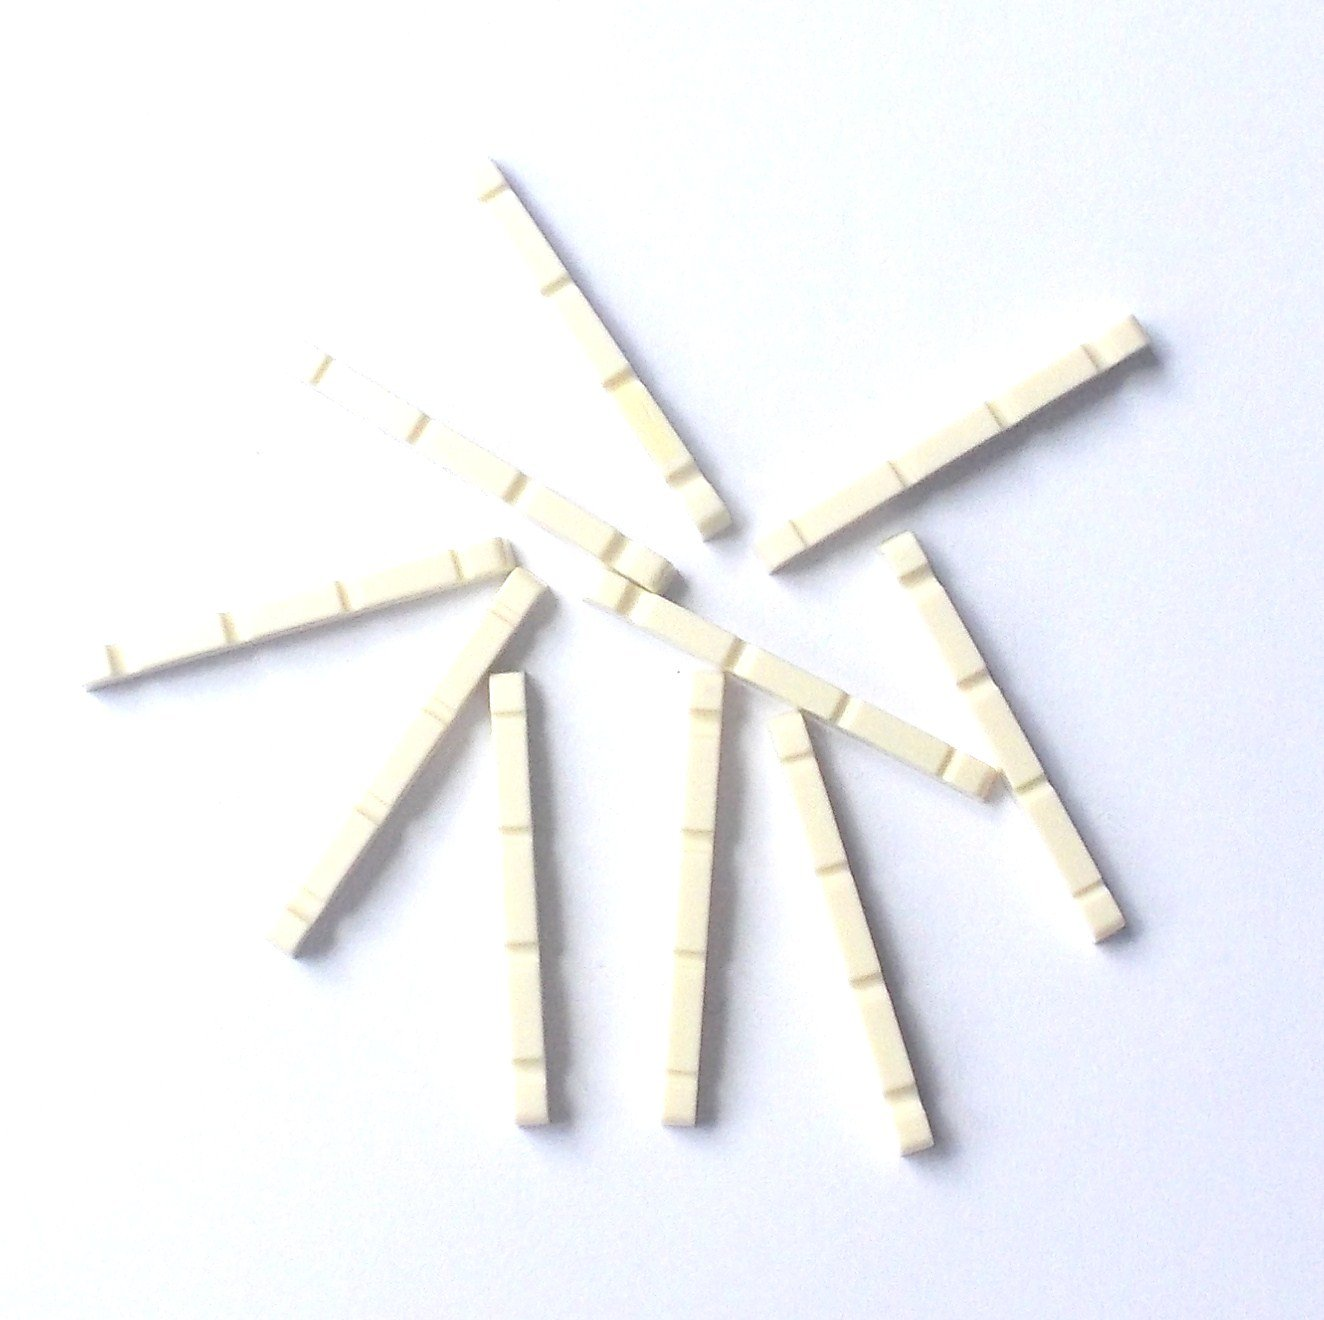 Generic 30 pcs Electric Bass Nuts for 4 String Bass Plastic 43 x 3.4 x 5.3-4.3 Ivory